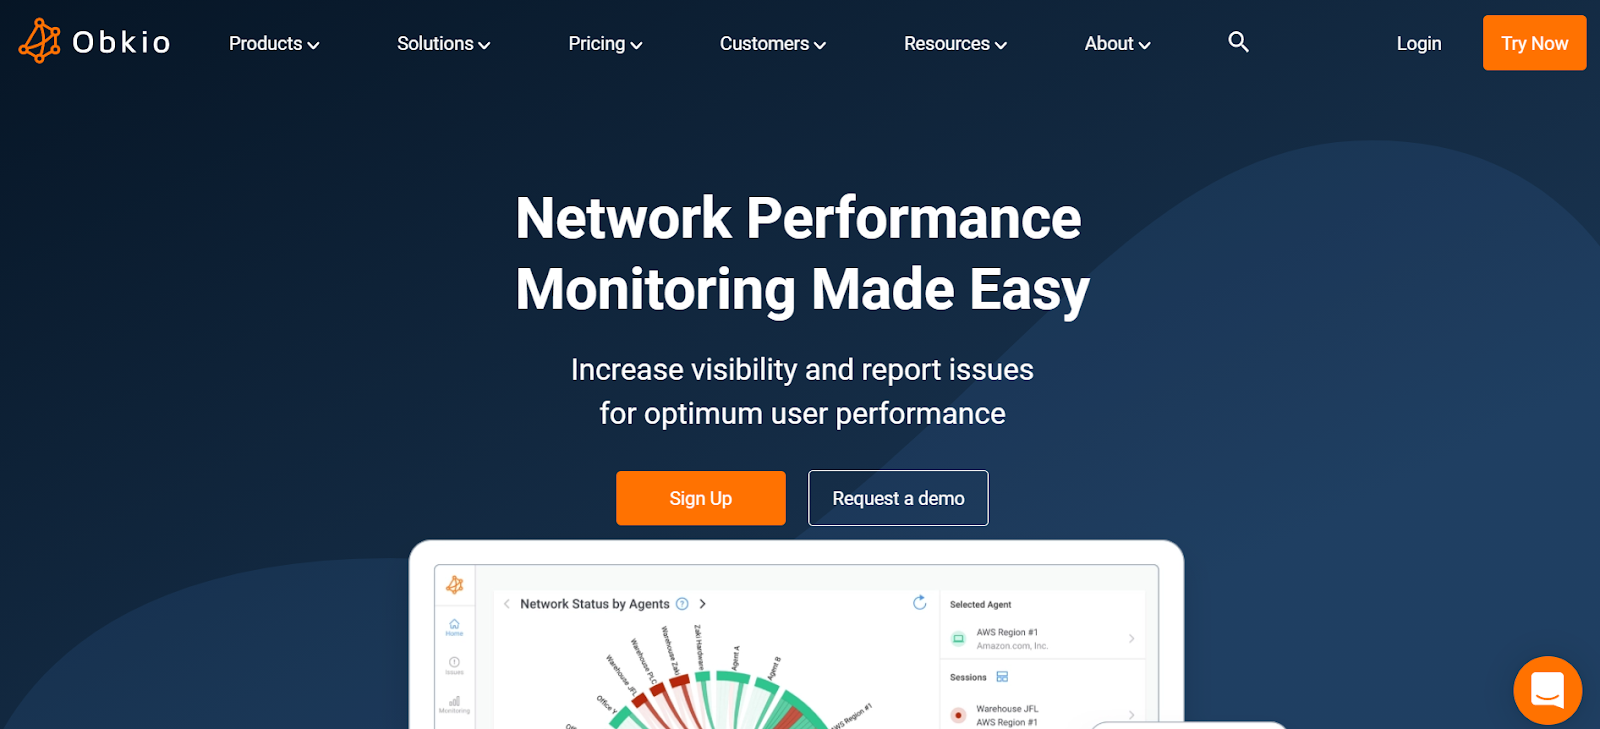 Obkio Network Performance Monitoring Tool